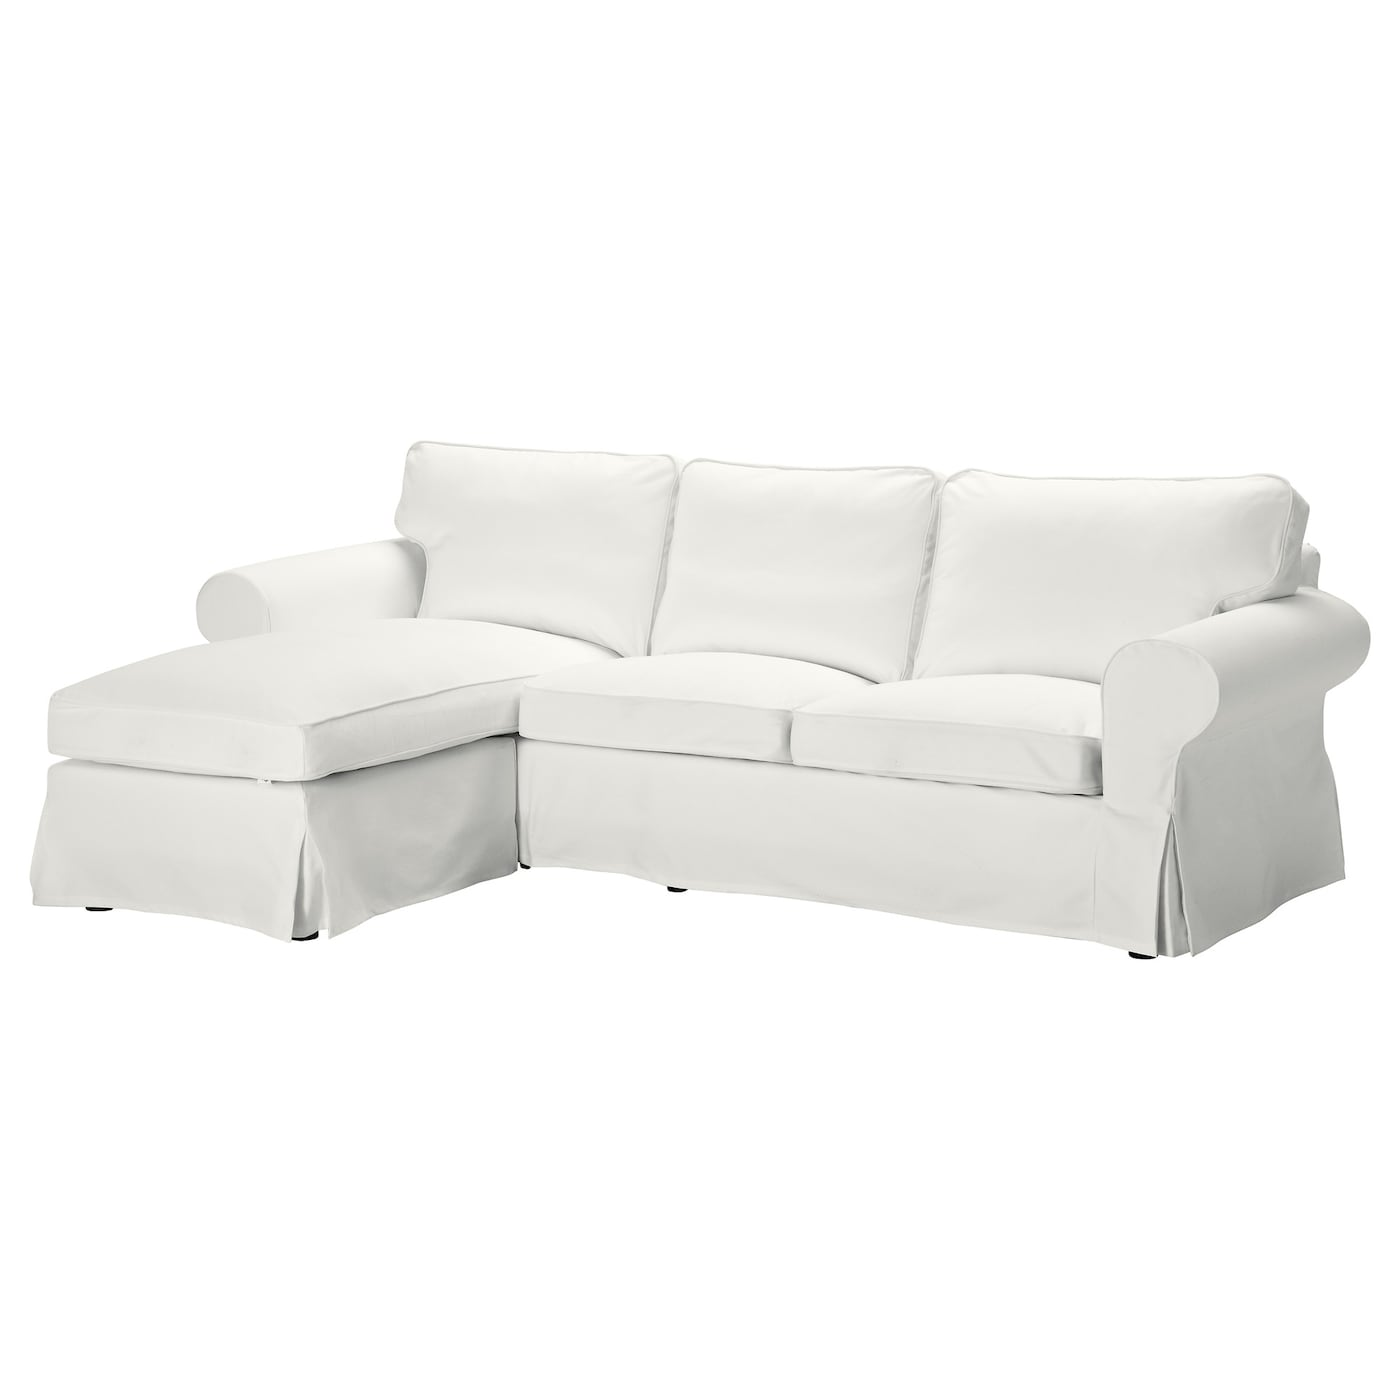 Ektorp Two Seat Sofa And Chaise Longue Blekinge White Ikea